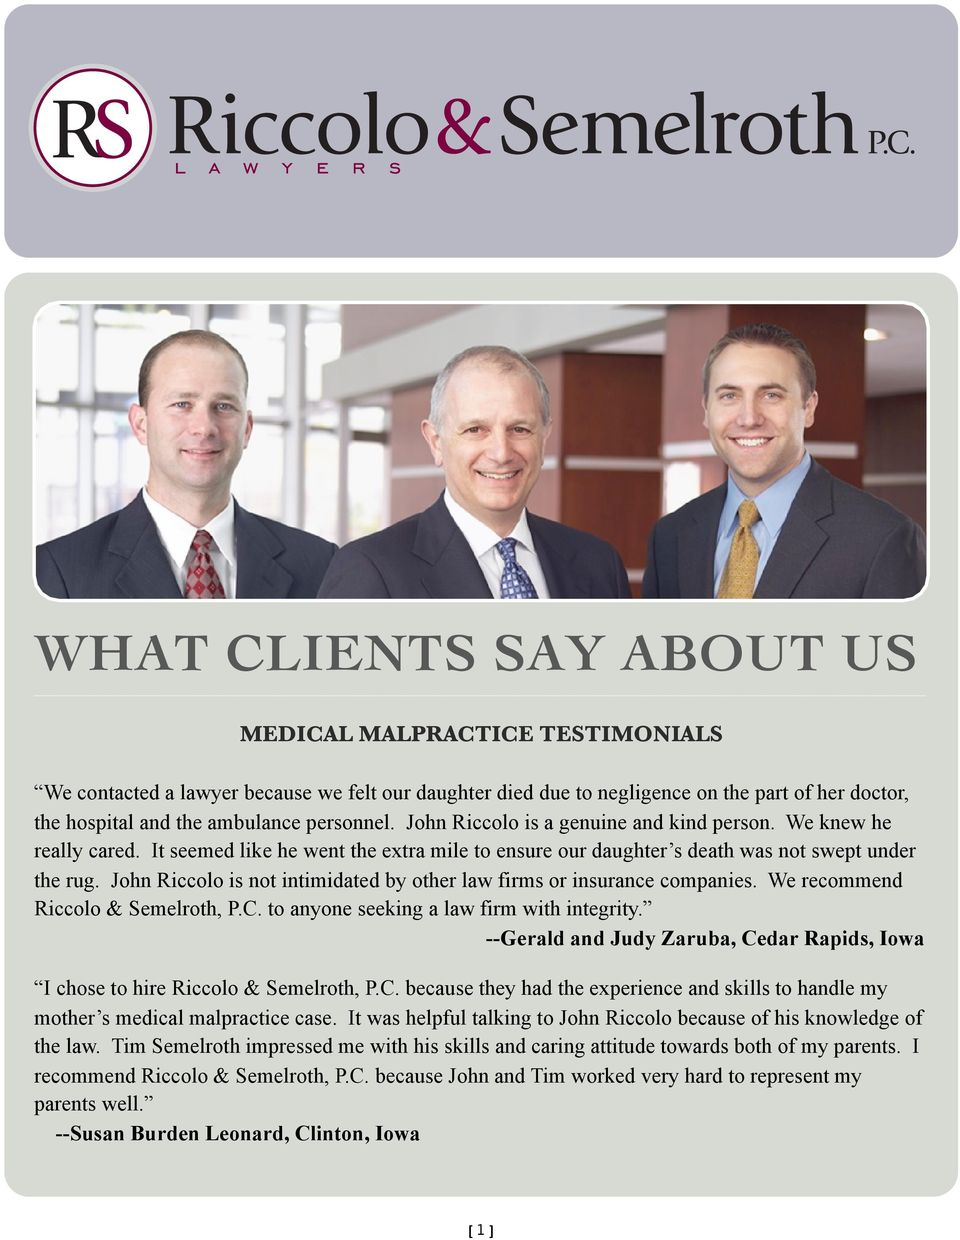 John Riccolo is not intimidated by other law firms or insurance companies. We recommend Riccolo & Semelroth, P.C. to anyone seeking a law firm with integrity.